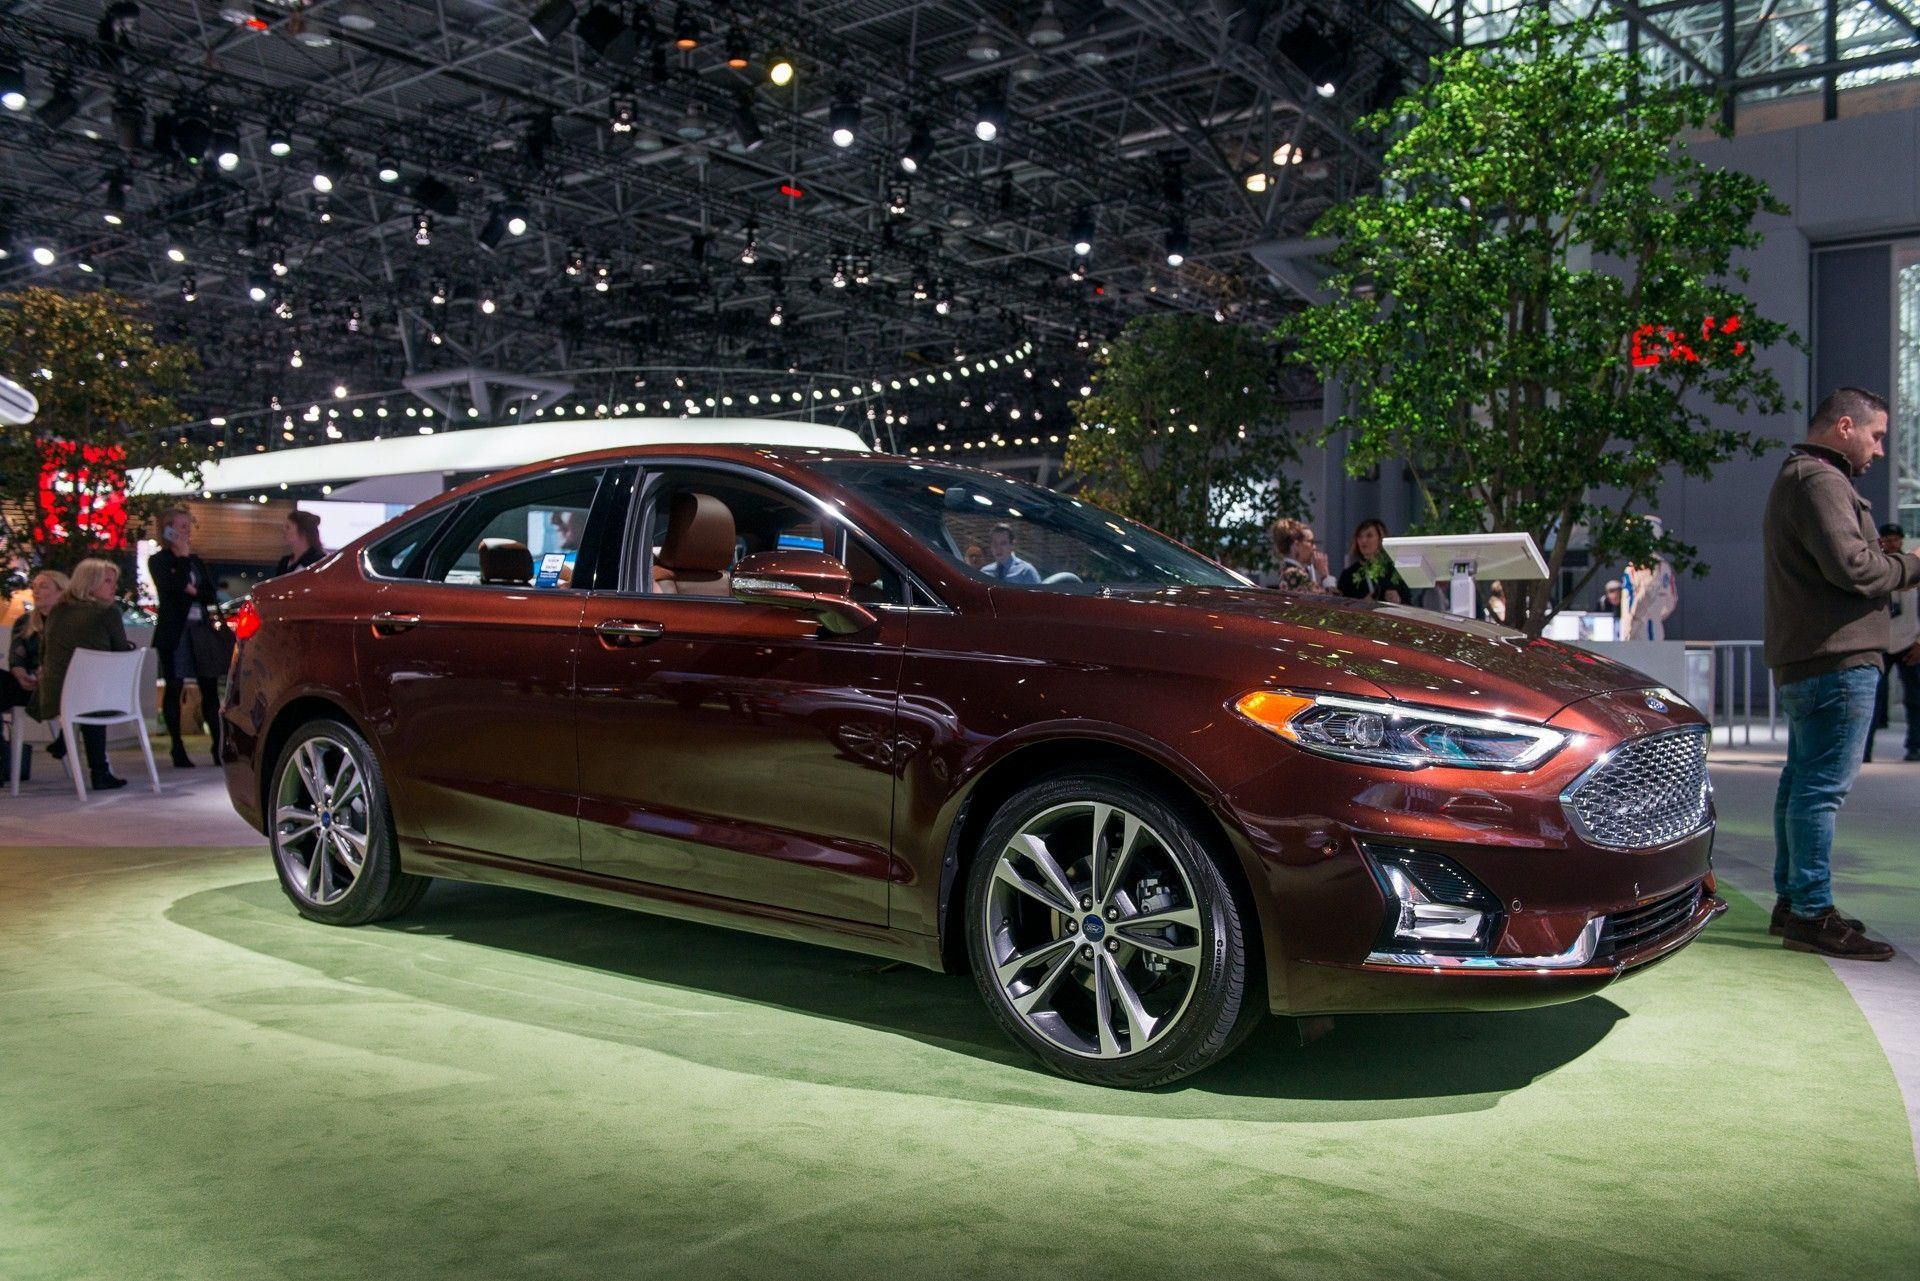 2019 Ford Fusion Energi Overview And Price Ford Fusion Energi Ford Fusion 2019 Ford